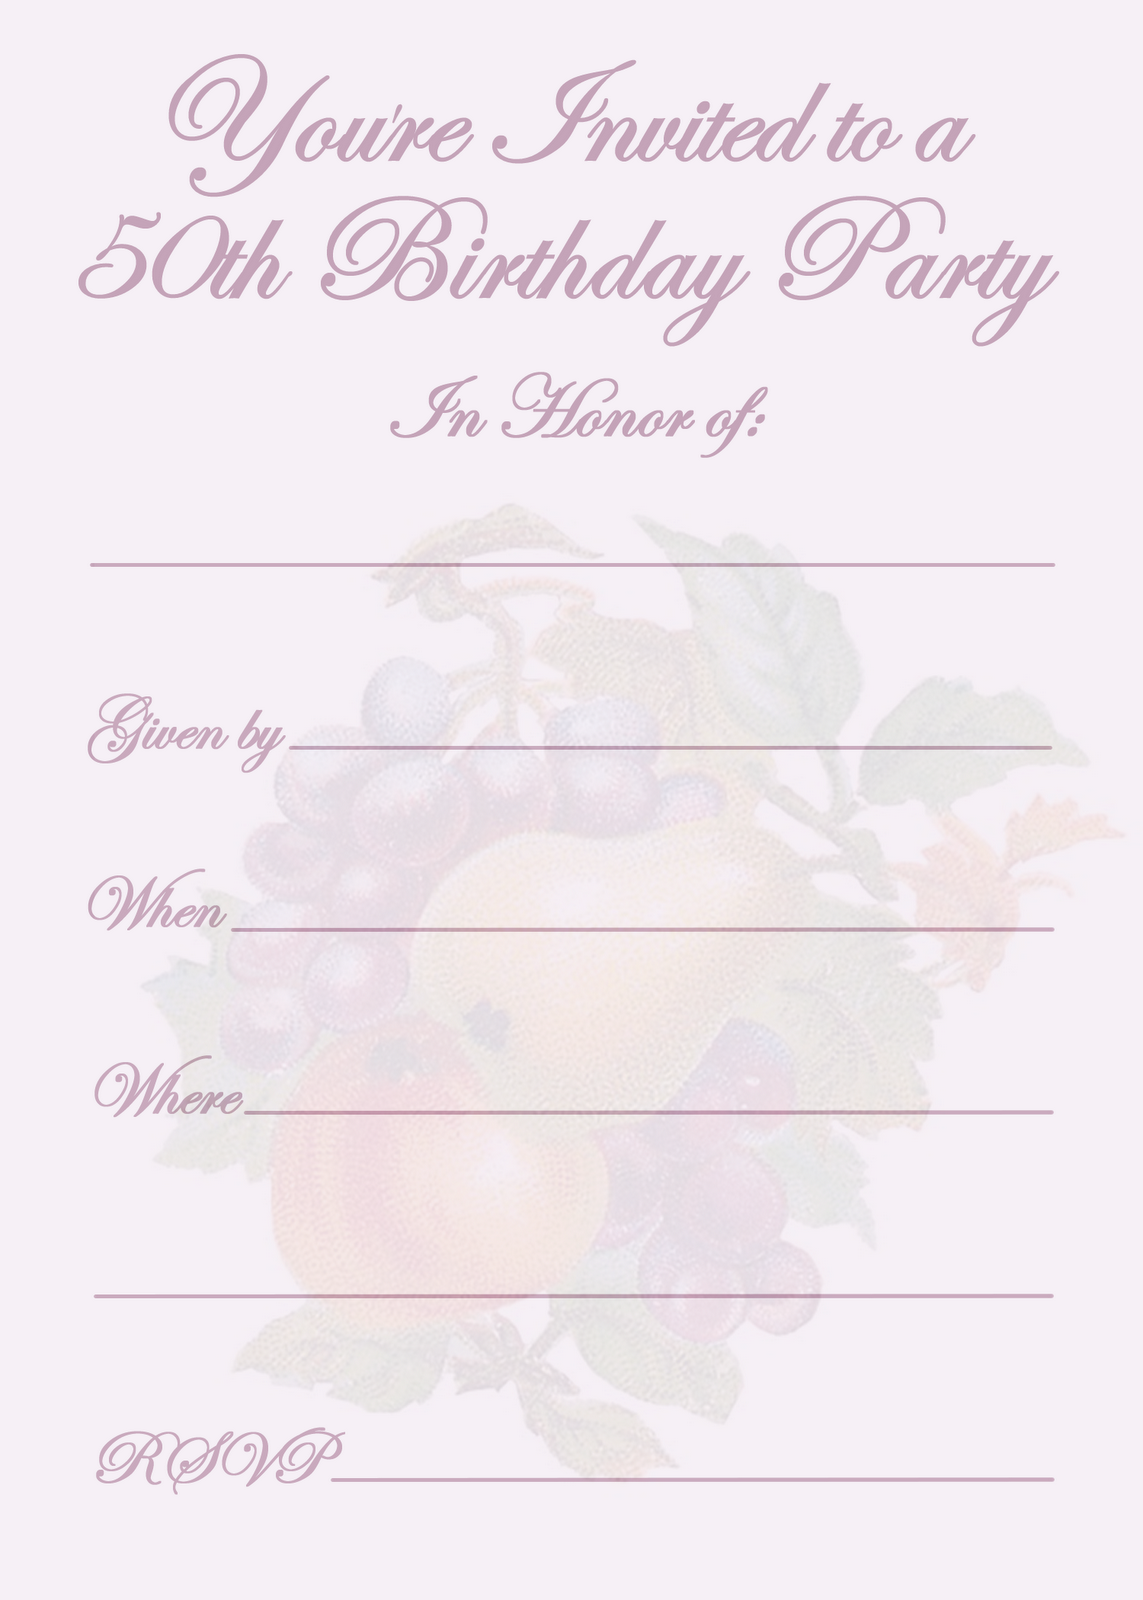 50th Birthday Party Invitation Templates | Party invitation ...